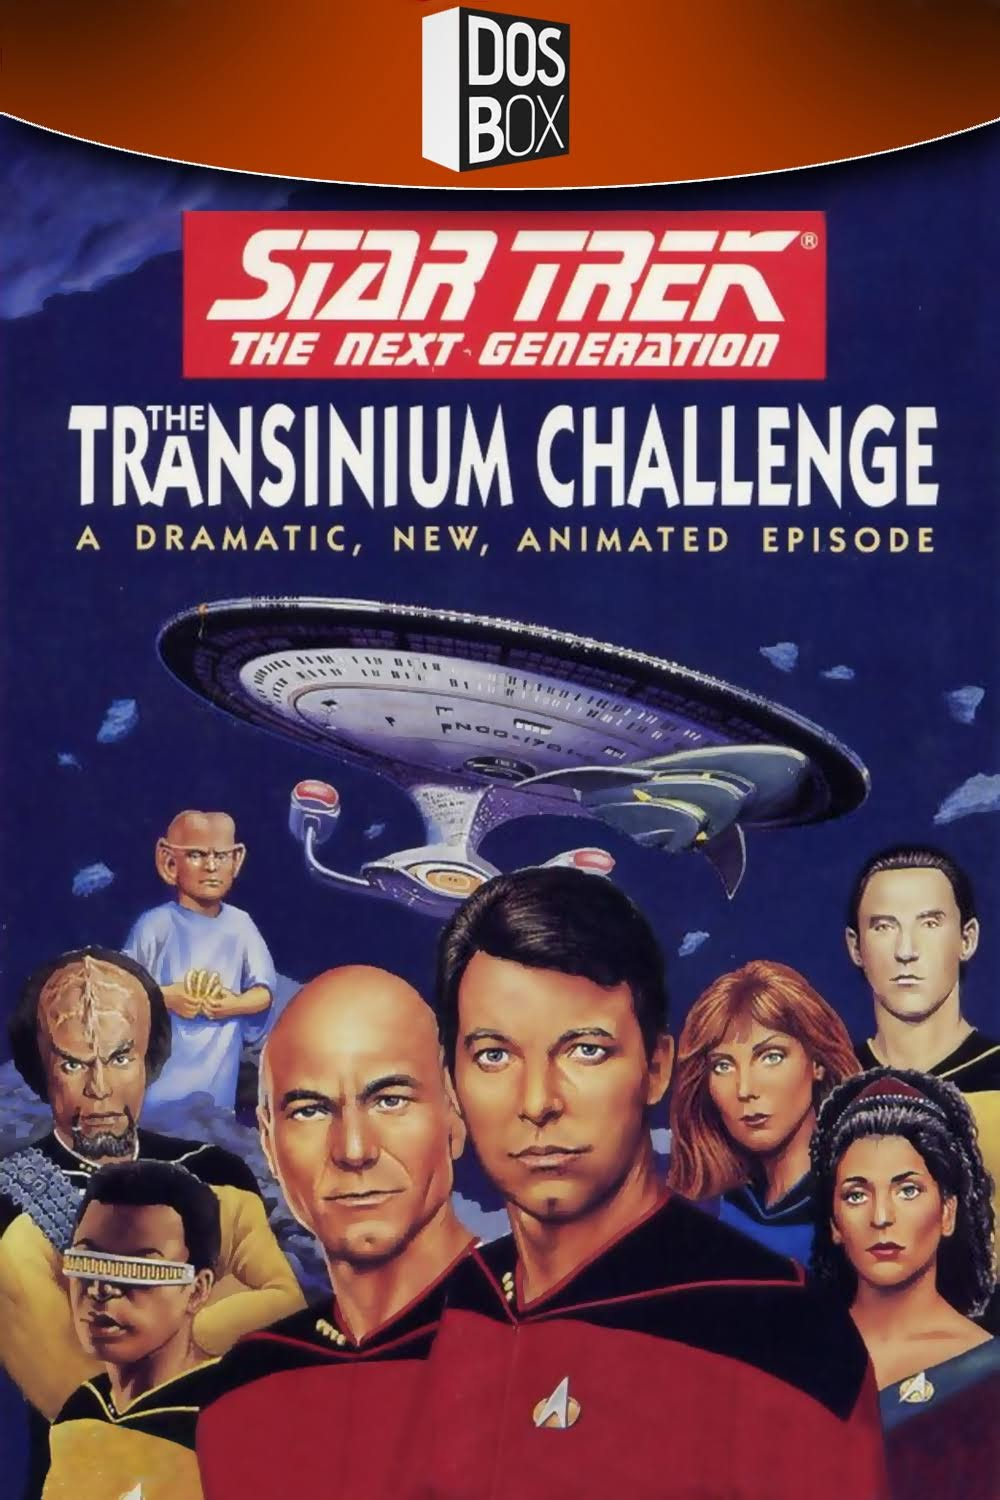 https://collectionchamber.blogspot.com/p/star-trek-next-generation-transinium.html